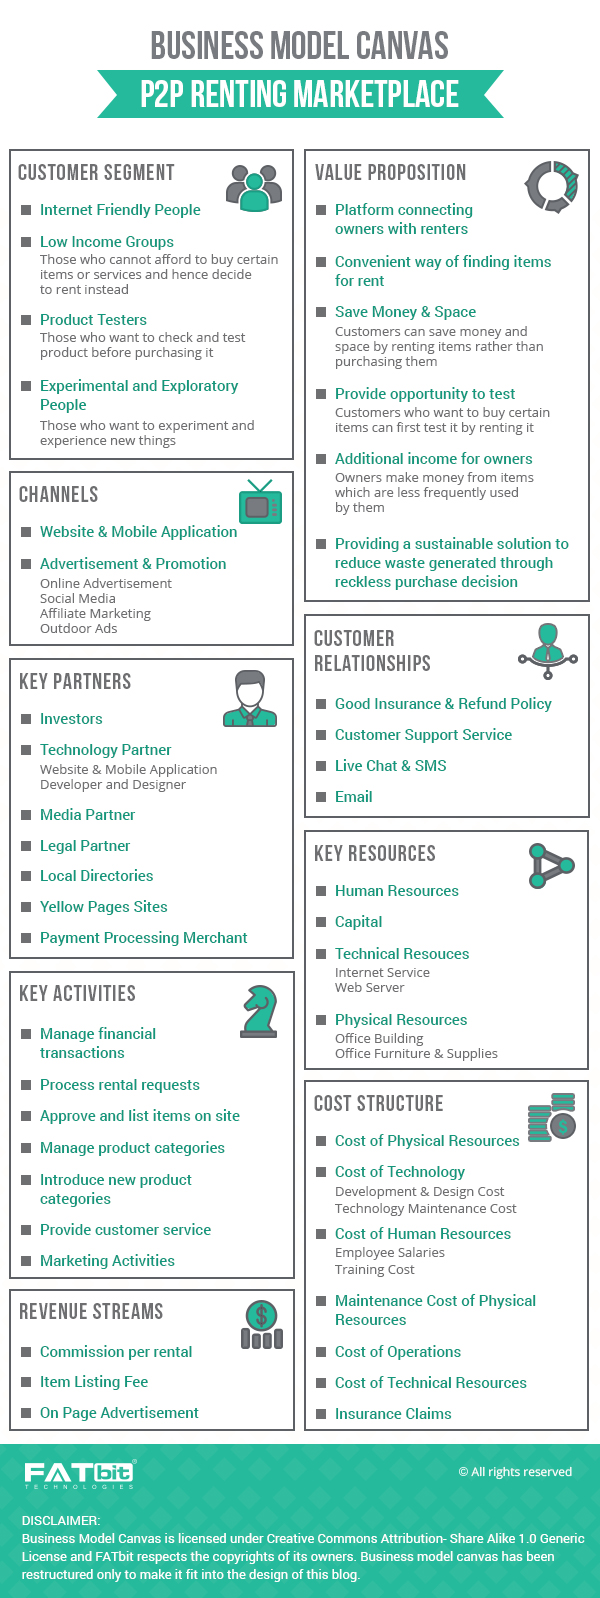 Business Model Canvas- P2P renting marketplace